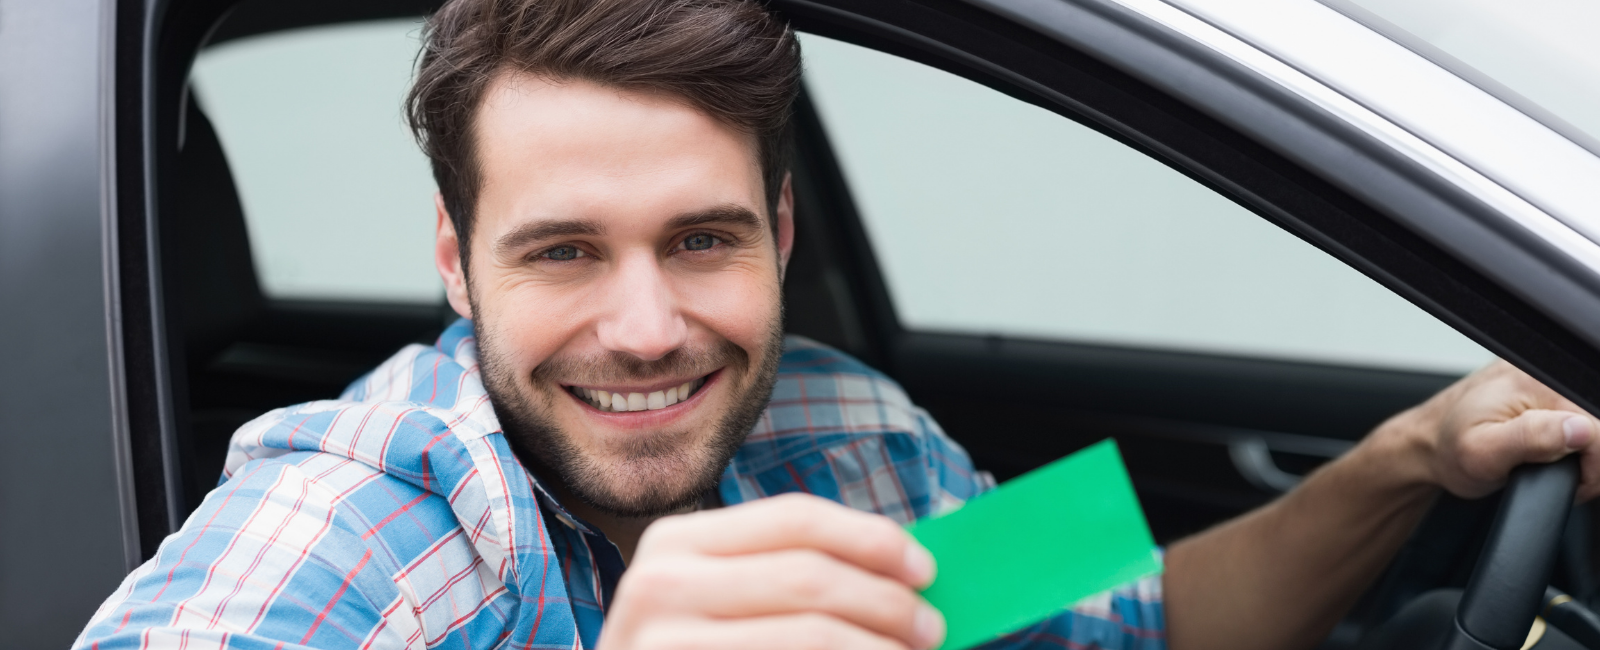 Person in a vehicle holding a landfill card